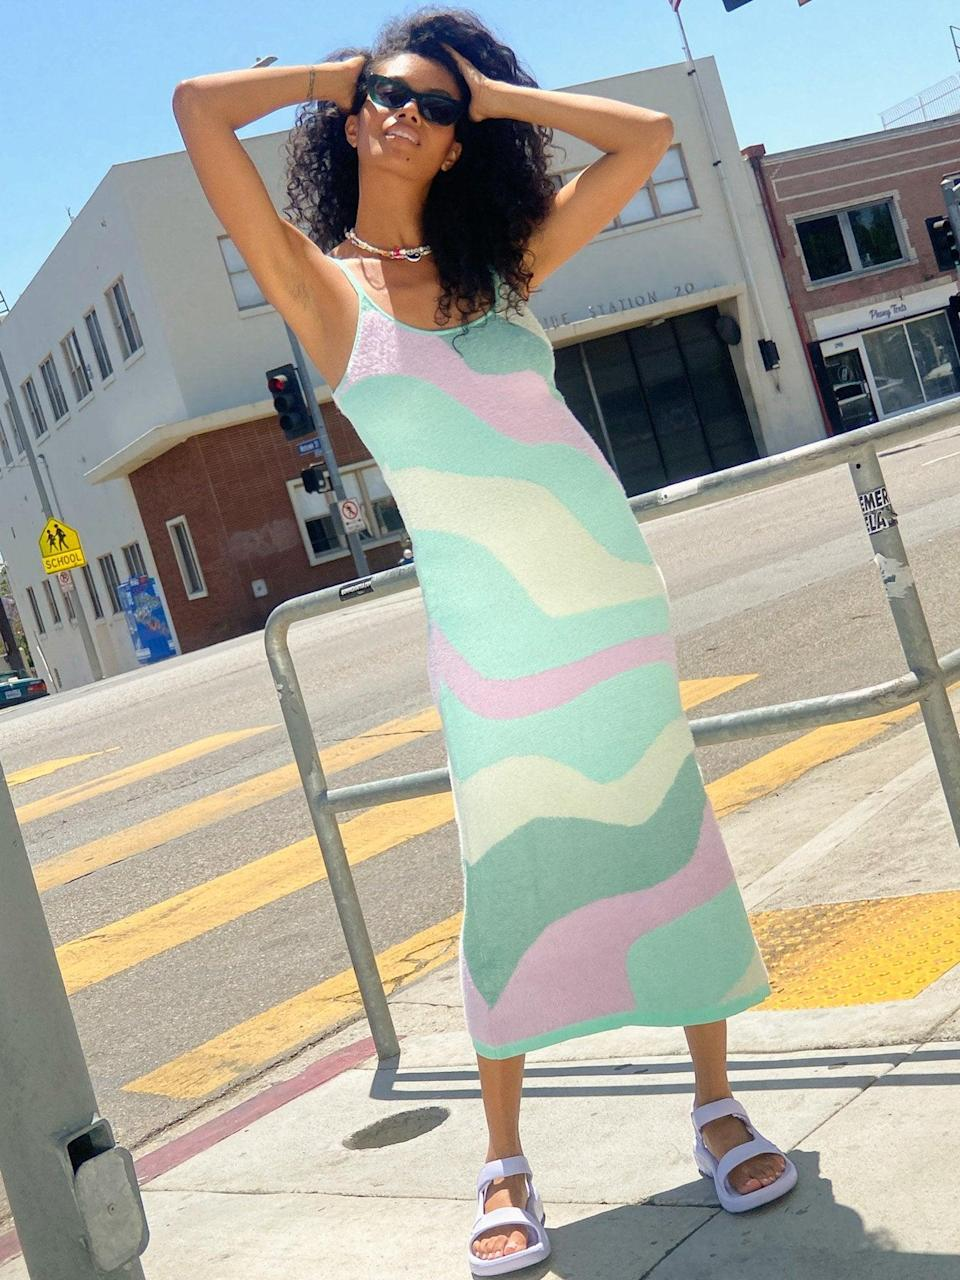 """<br><br><strong>House Of Sunny</strong> Good Vibrations Dress, $, available at <a href=""""https://go.skimresources.com/?id=30283X879131&url=https%3A%2F%2Flisasaysgah.com%2Fcollections%2Fdresses%2Fproducts%2Fgood-vibrations-dress-multi"""" rel=""""nofollow noopener"""" target=""""_blank"""" data-ylk=""""slk:Lisa Says Gah"""" class=""""link rapid-noclick-resp"""">Lisa Says Gah</a>"""